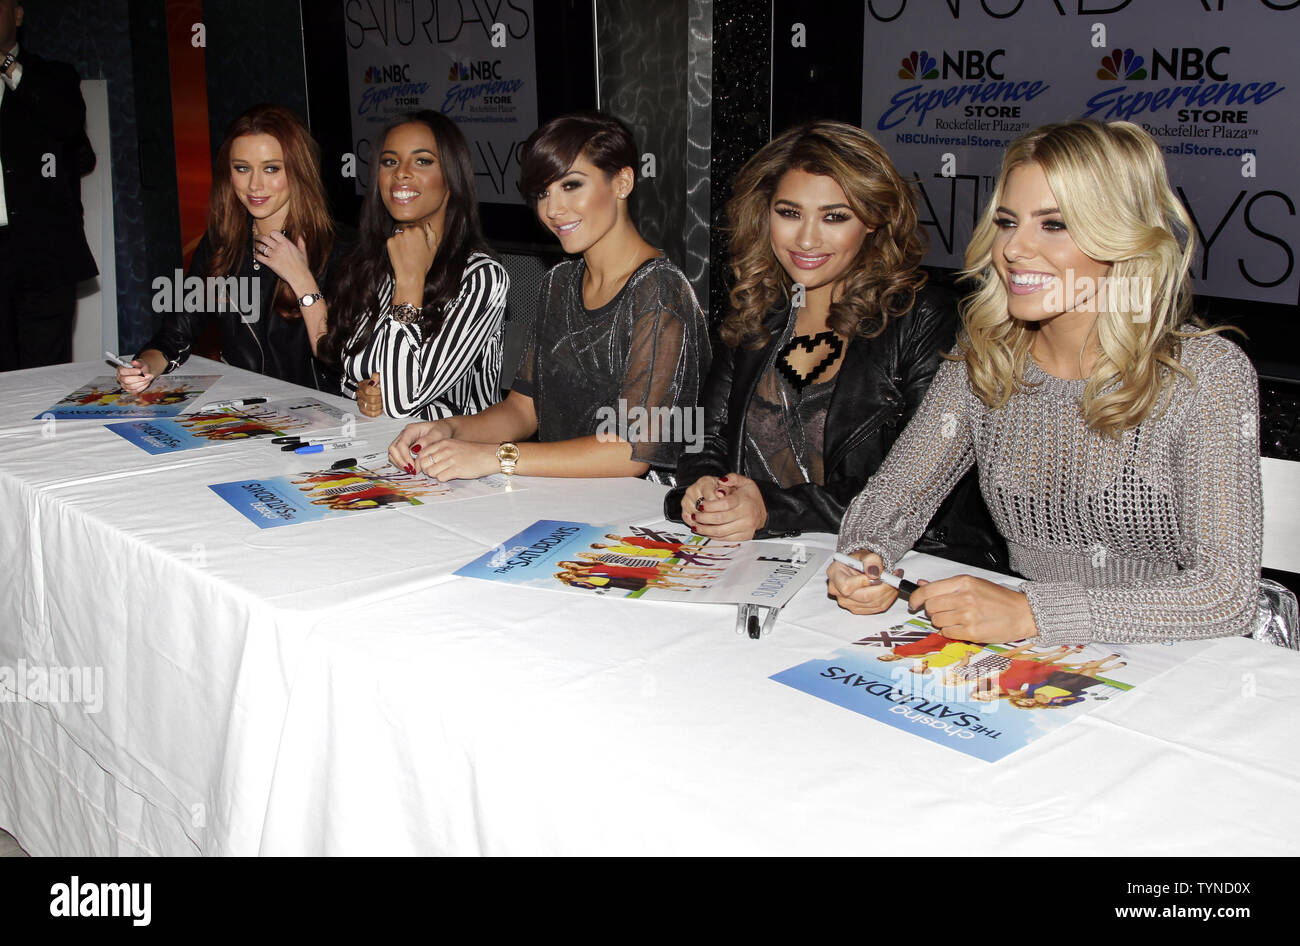 Mollie King, Vanessa White, Frankie Sandford, Rochelle Humes and Una Healy (R) of The Saturdays promote 'Chasing The Saturdays' at the NBC Experience Store in New York City on January 17, 2013.       UPI/John Angelillo - Stock Image